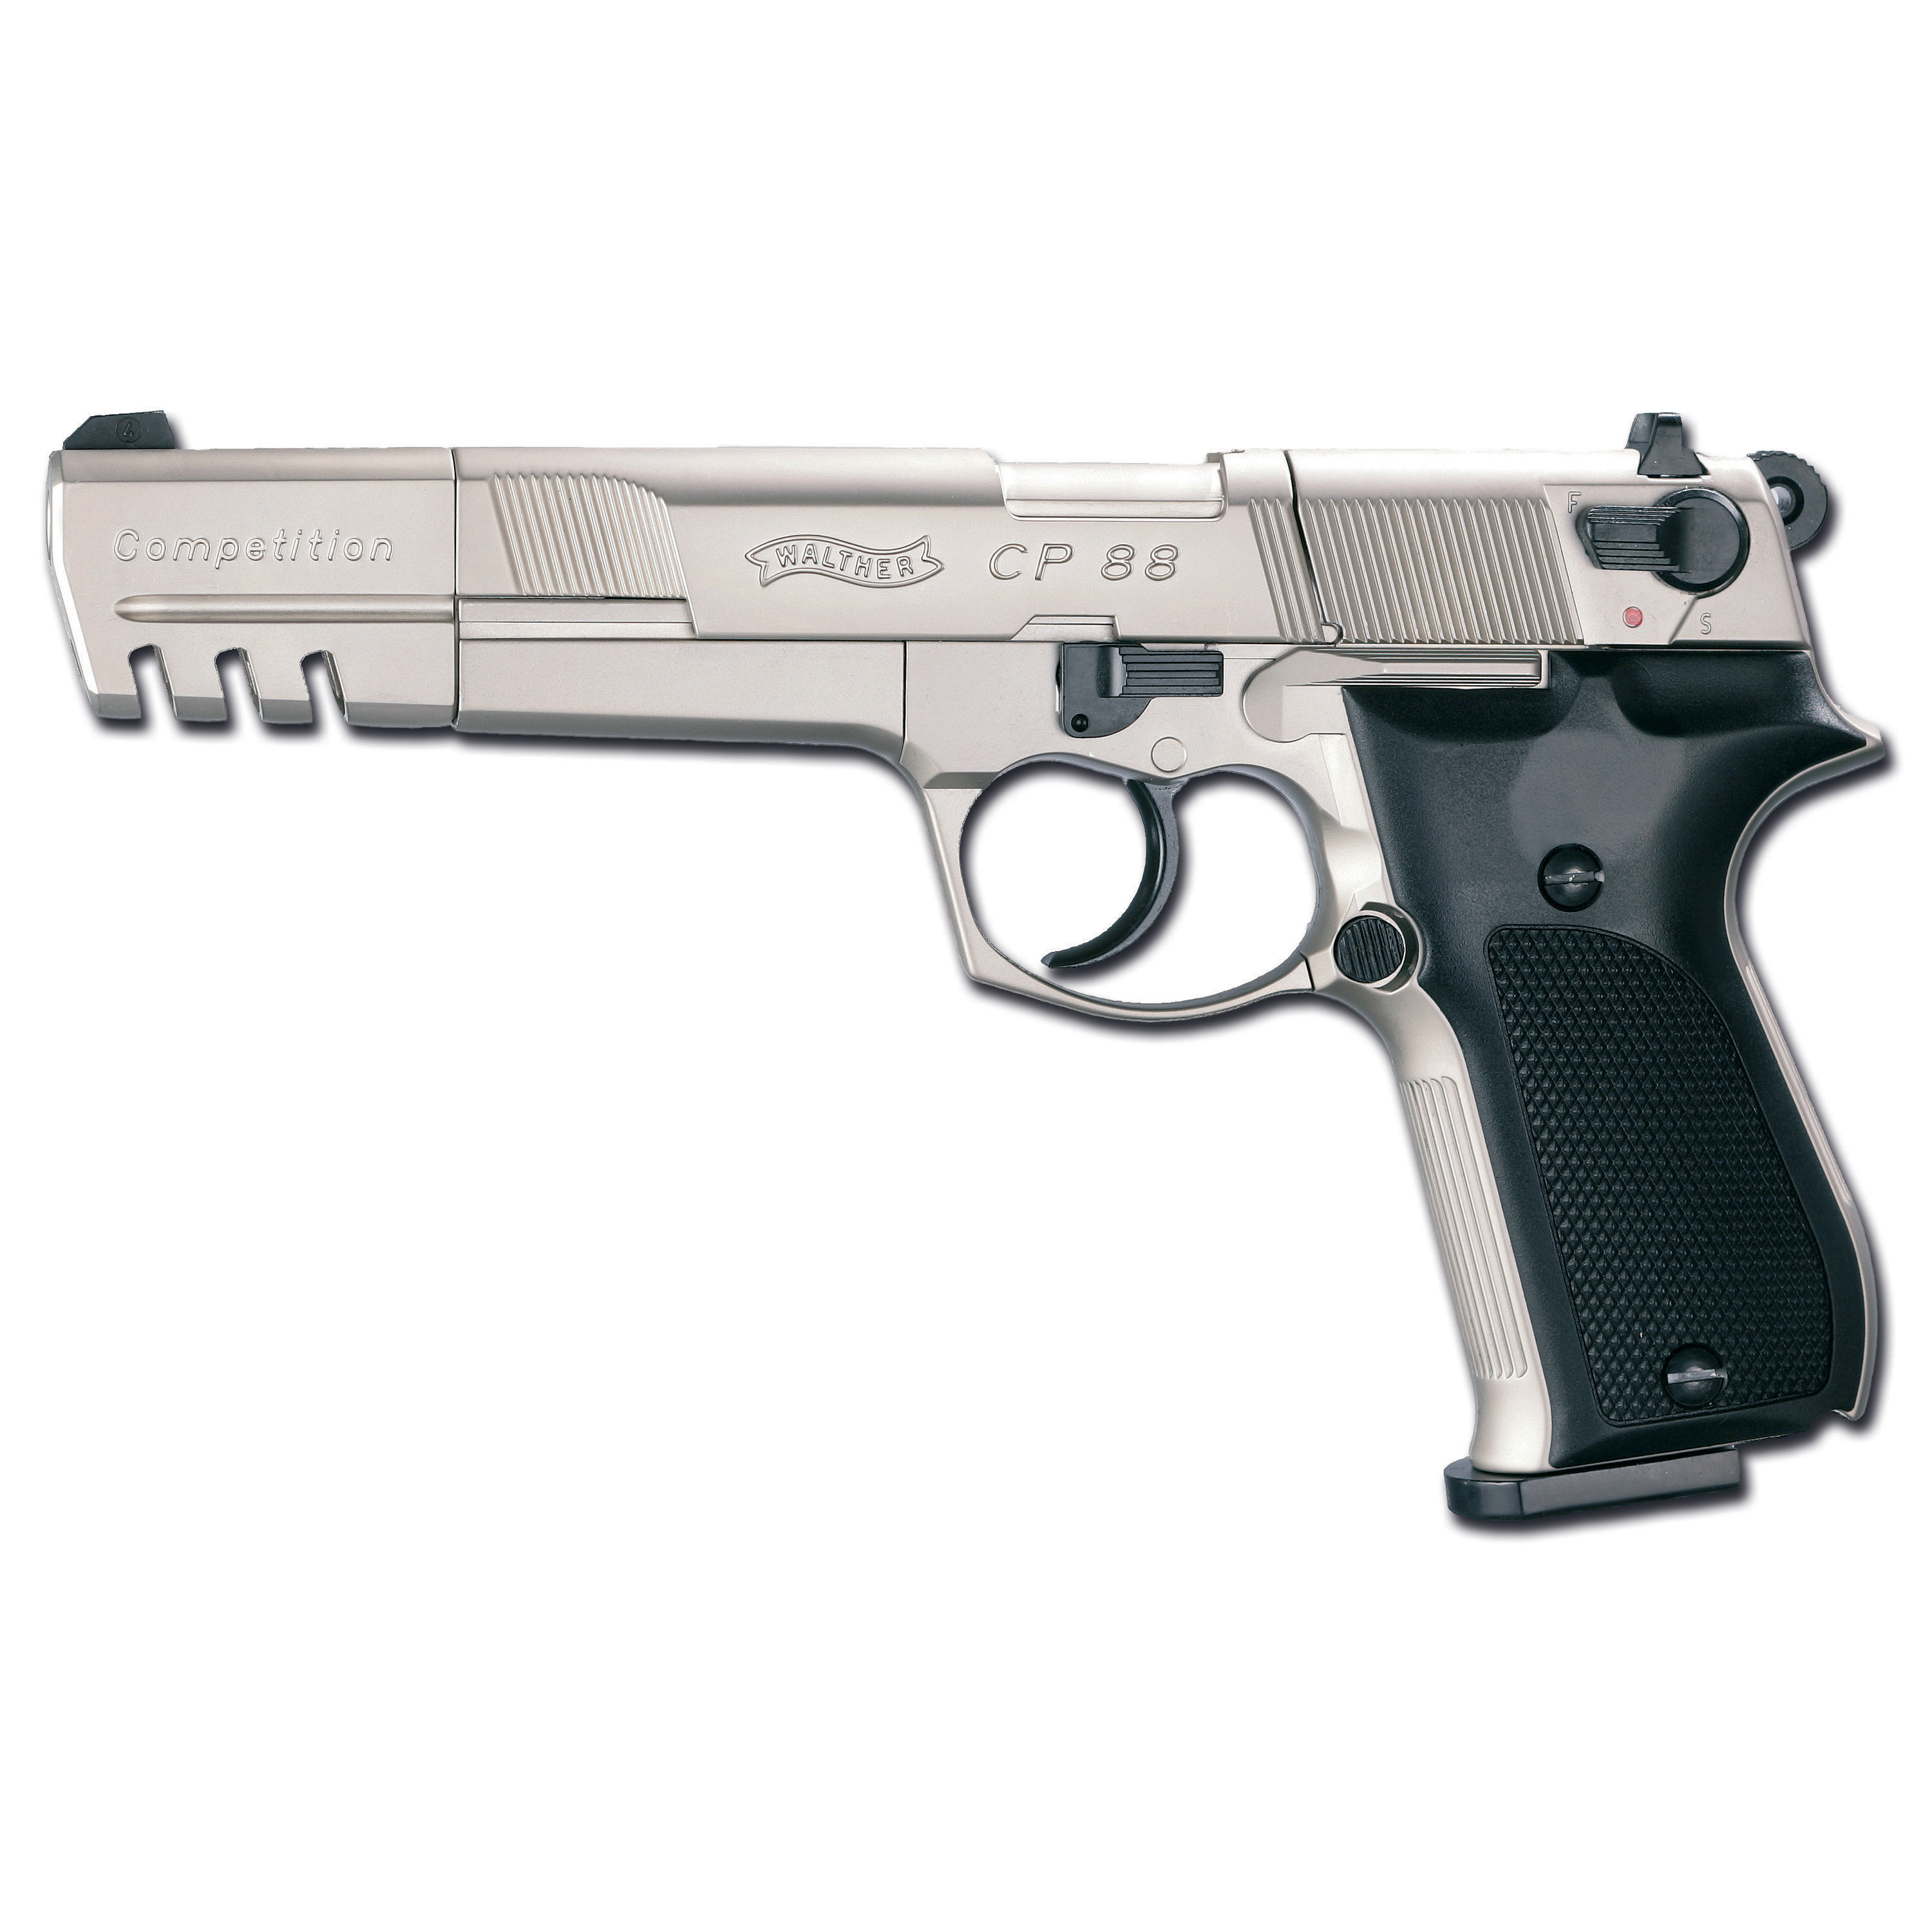 Pistol Walther CP88 Competition, nickel